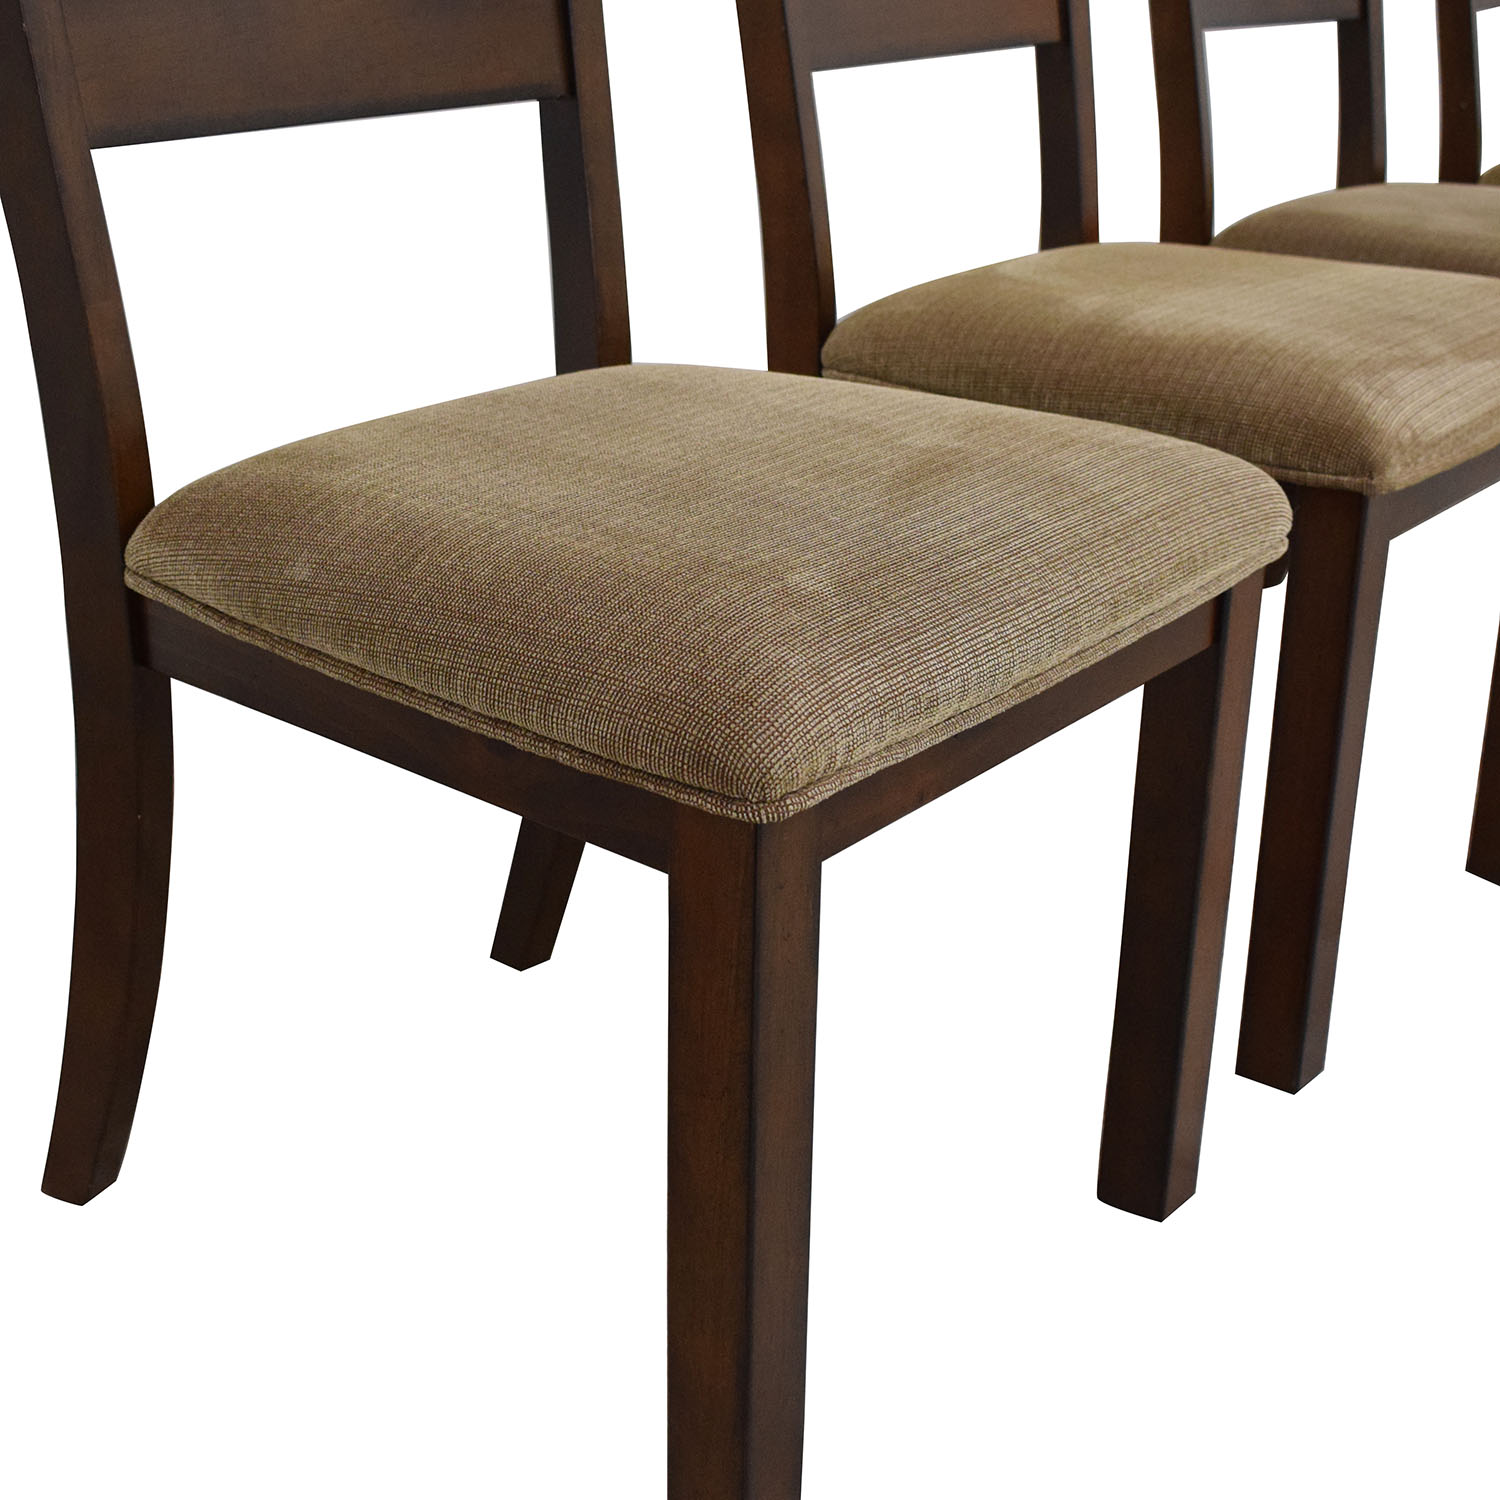 shop Wayfair Wayfair Ladder Back Upholstered Dining Chairs online